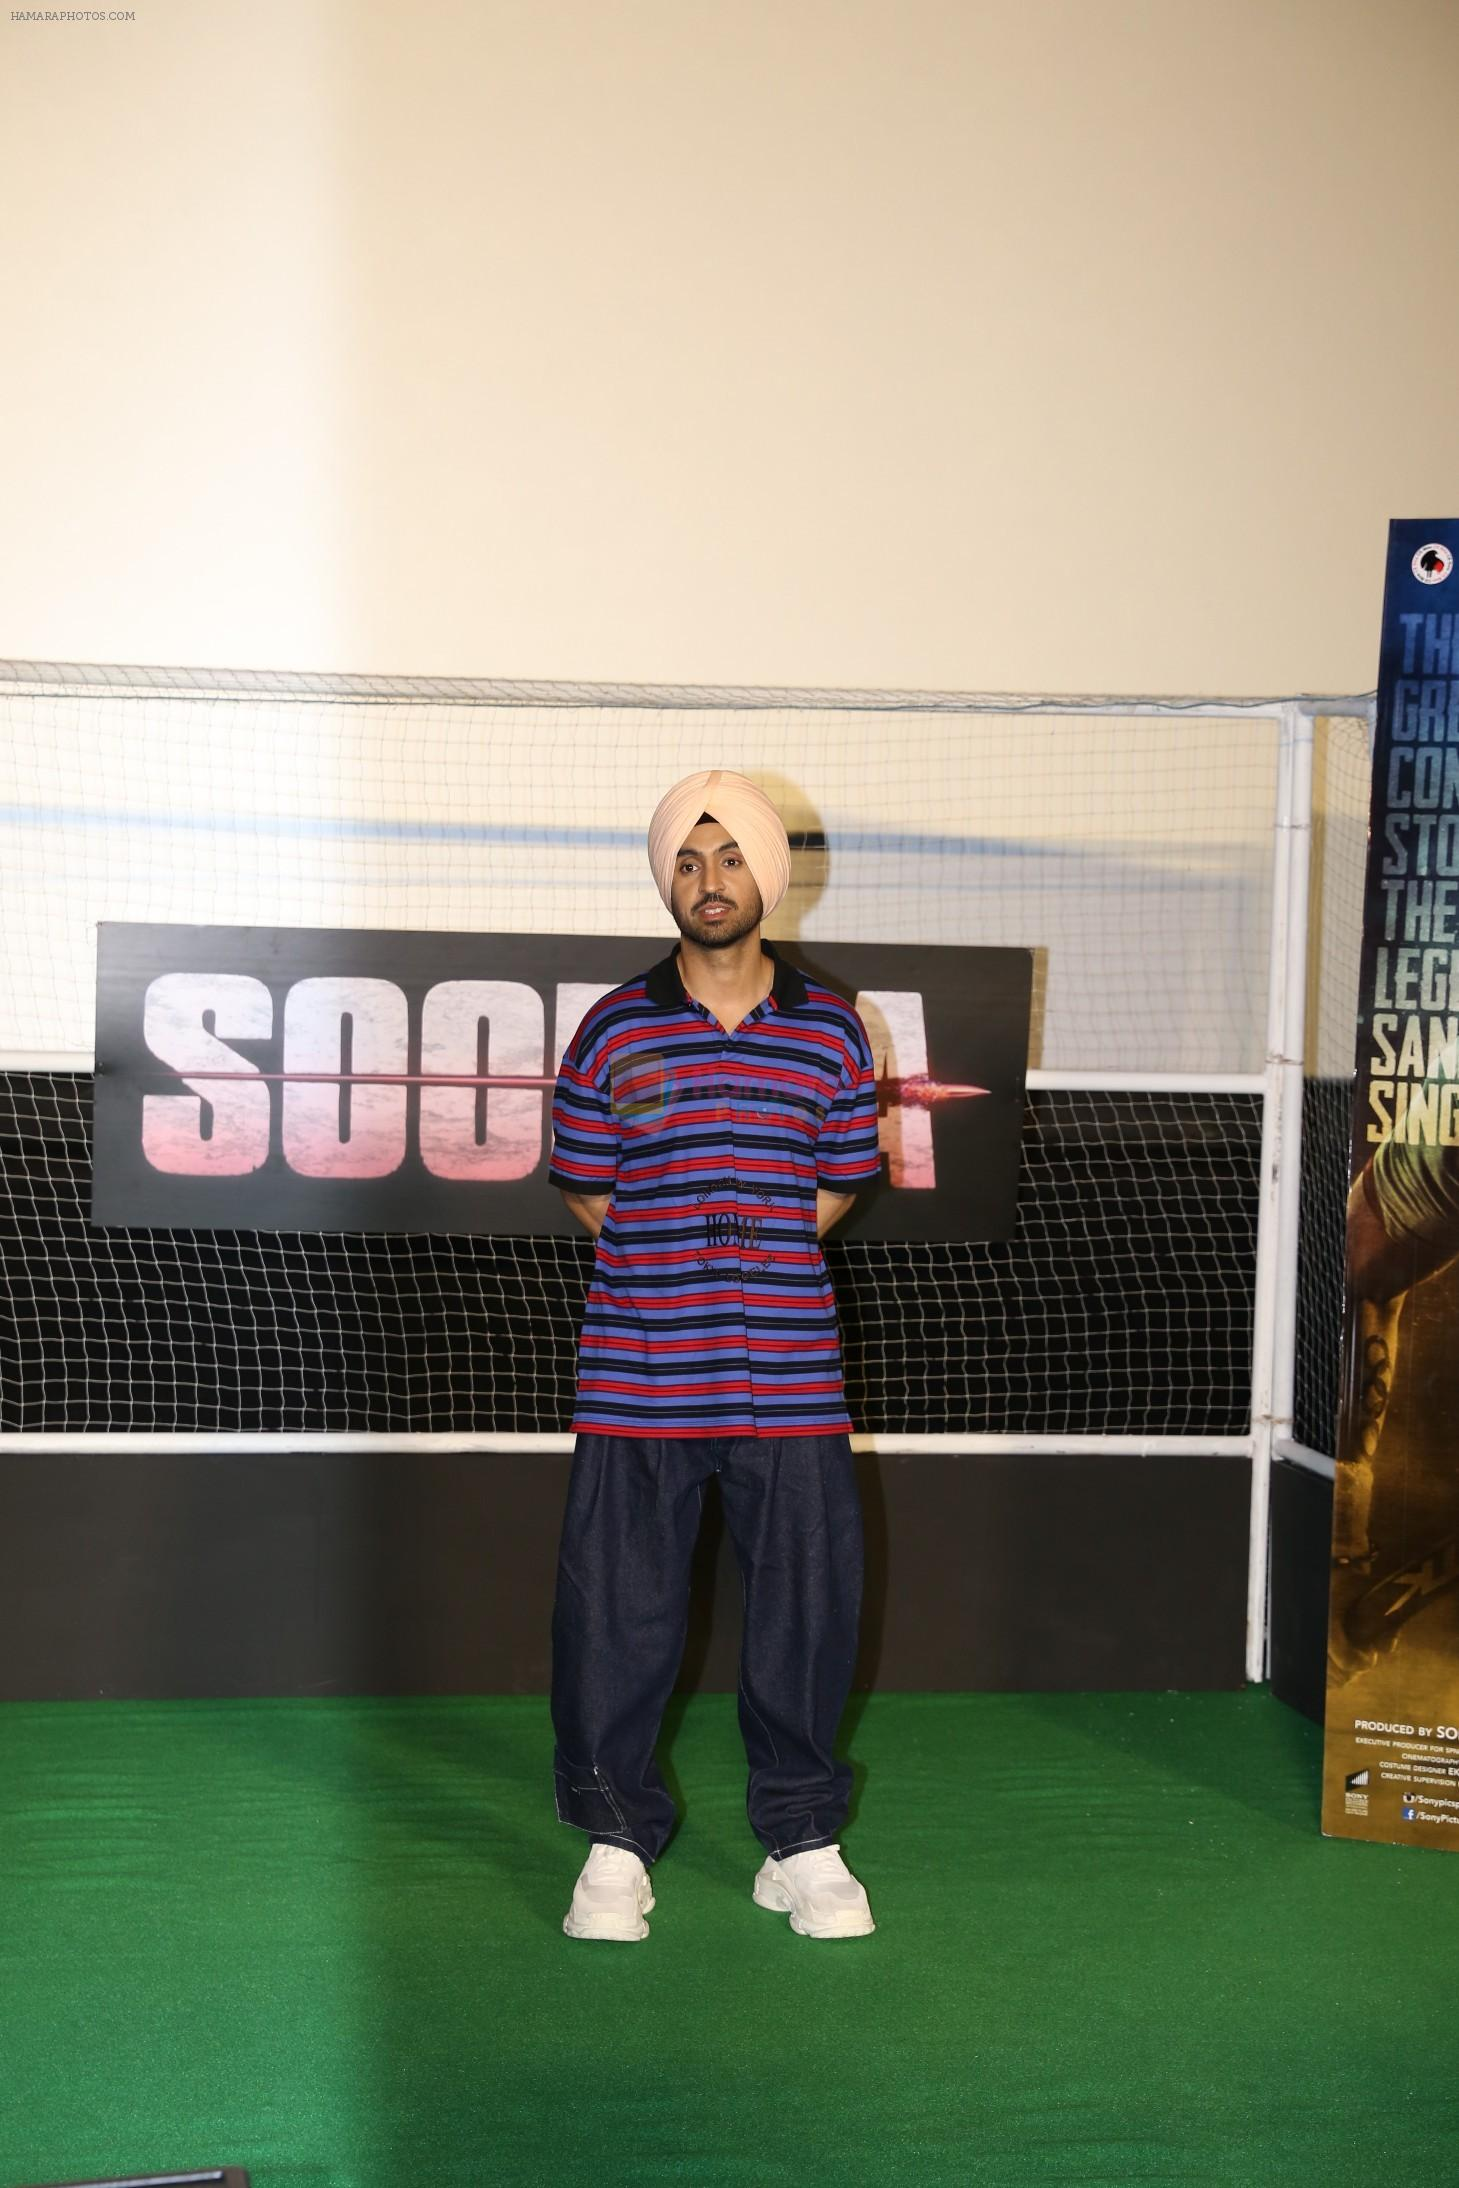 Diljit Dosanjh at the Trailer launch of film Soorma at pvr juhu in mumbai on 11th June 2018